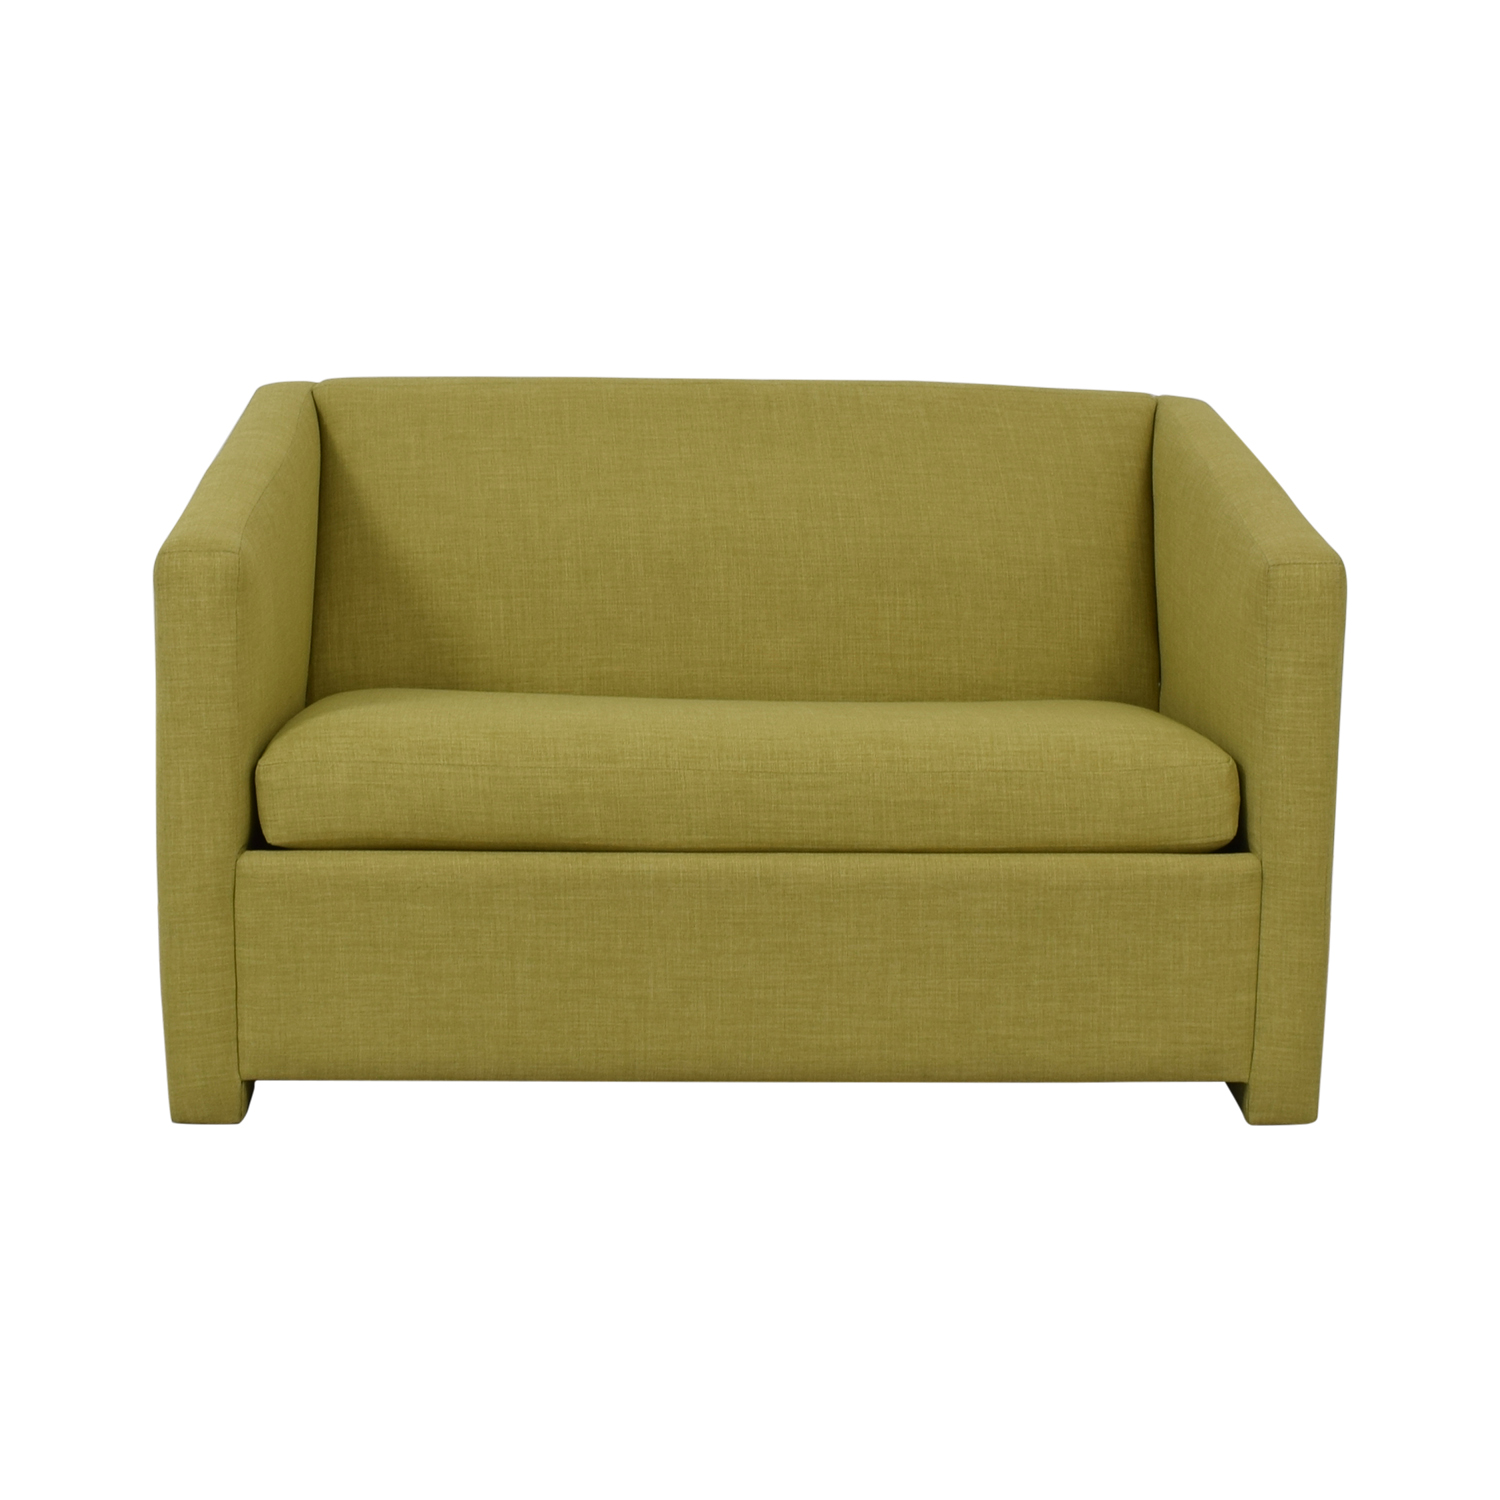 72% OFF - CB2 CB2 Lime Green Loveseat with Pullout Bed / Sofas